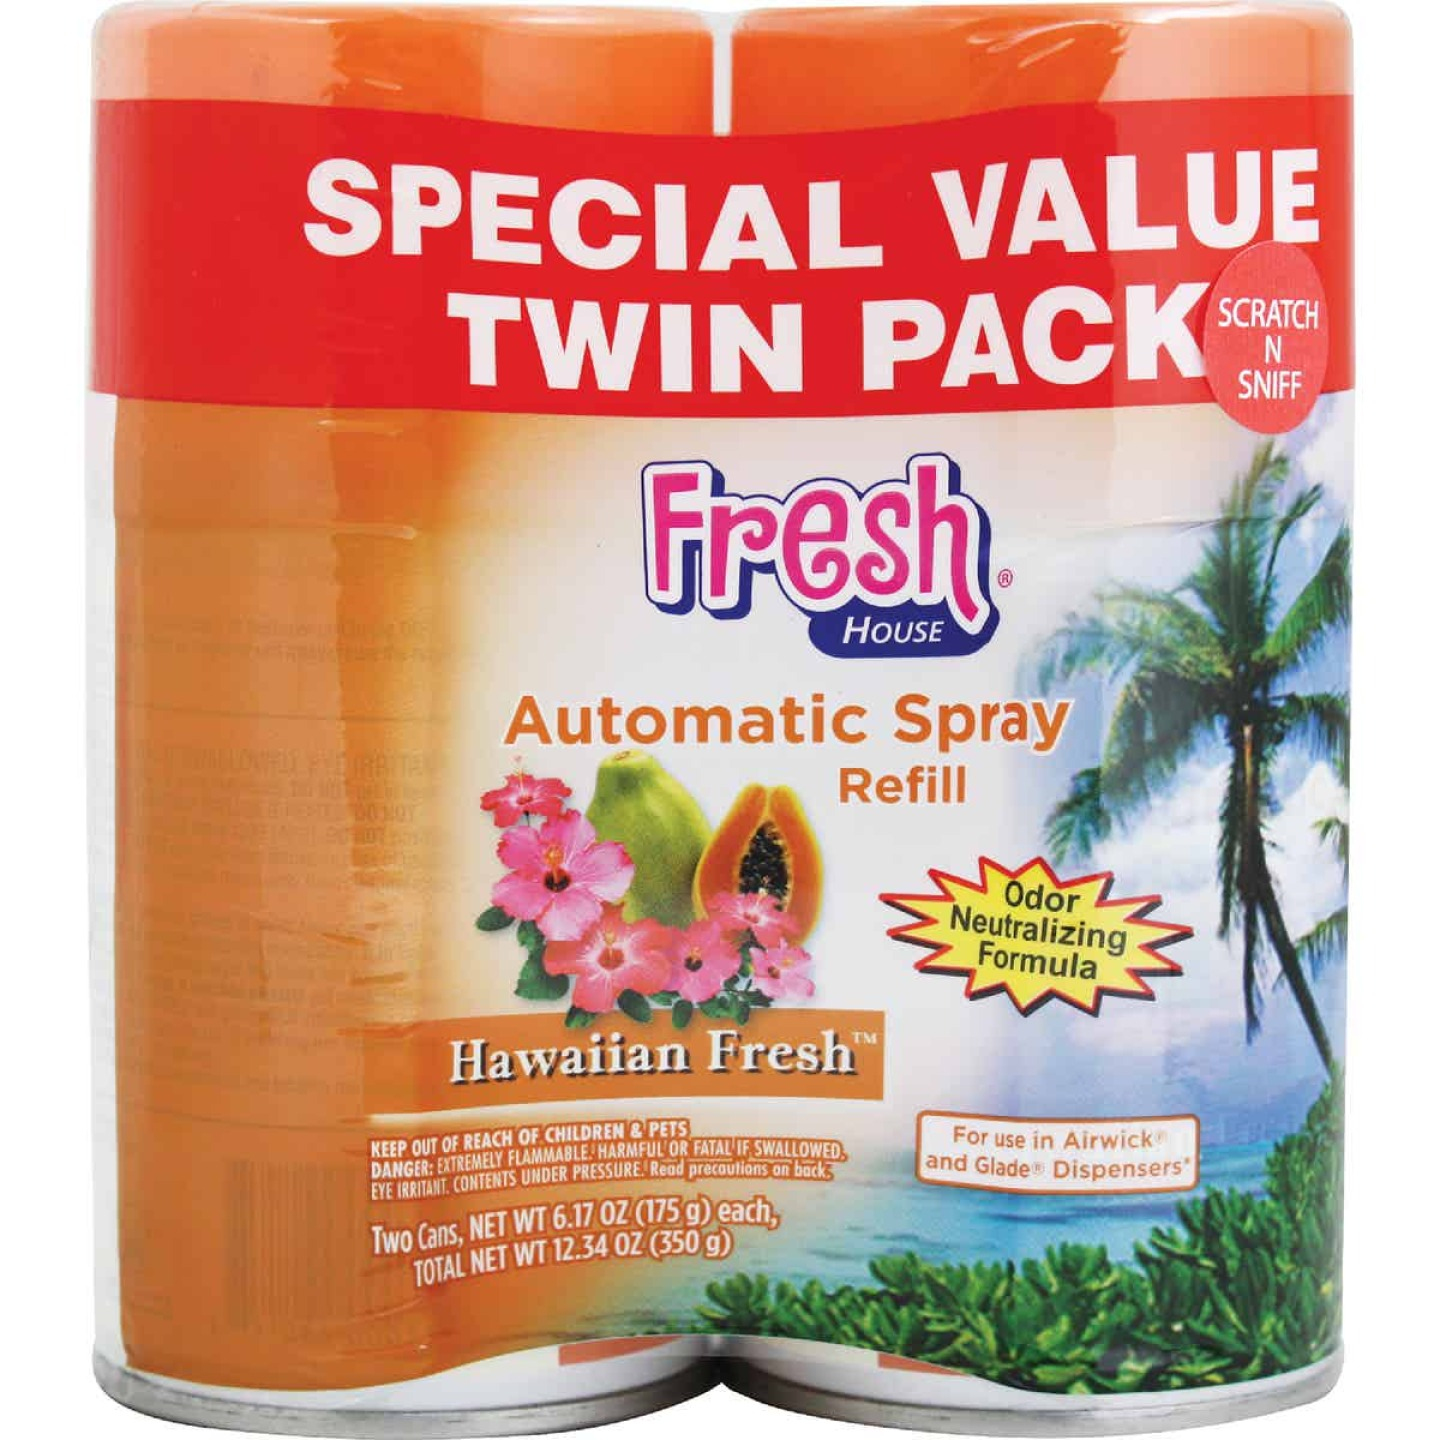 Fresh House Hawaiian Fresh Air Freshener Refill (2-Count) Image 1